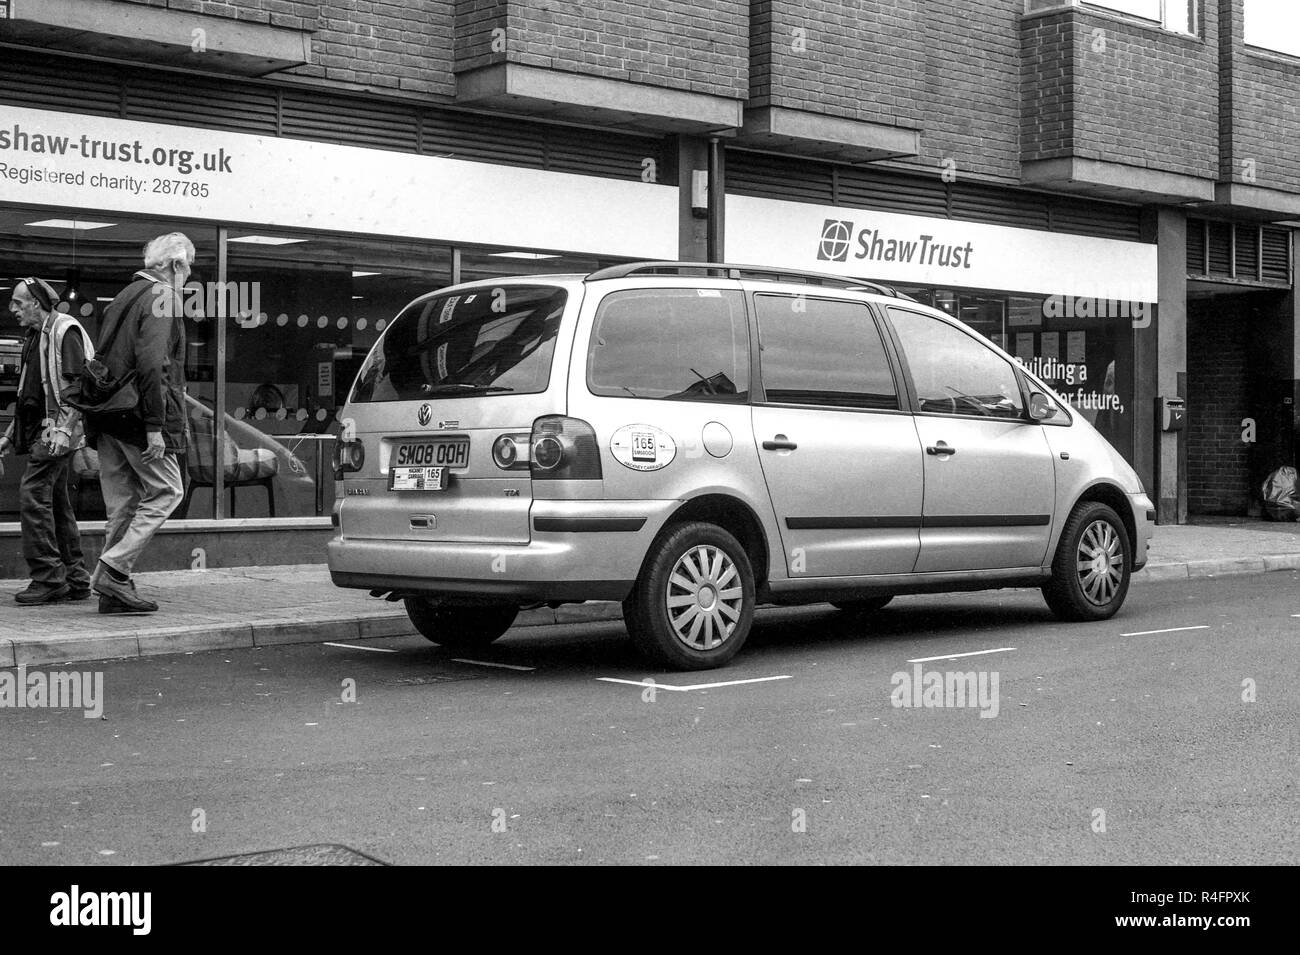 Parked Taxi on a street outside the Shaw Trust in Leicester city centre. shot on a Pentax K1000 slr camera with Ilford 35mm black and white film. - Stock Image